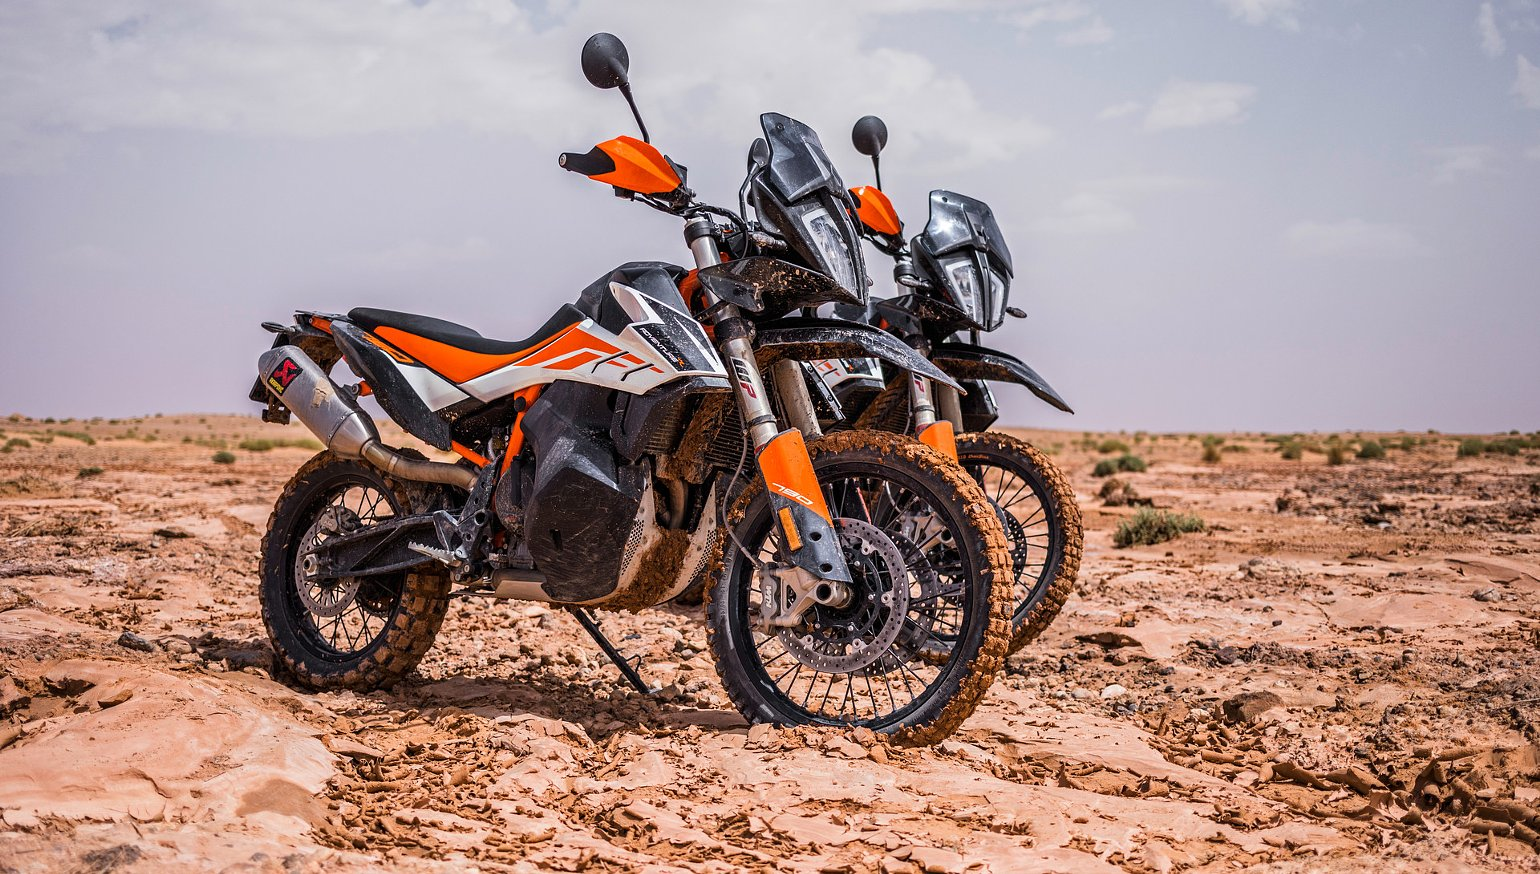 The KTM 790 Adventure R is priced to dominate the off-road